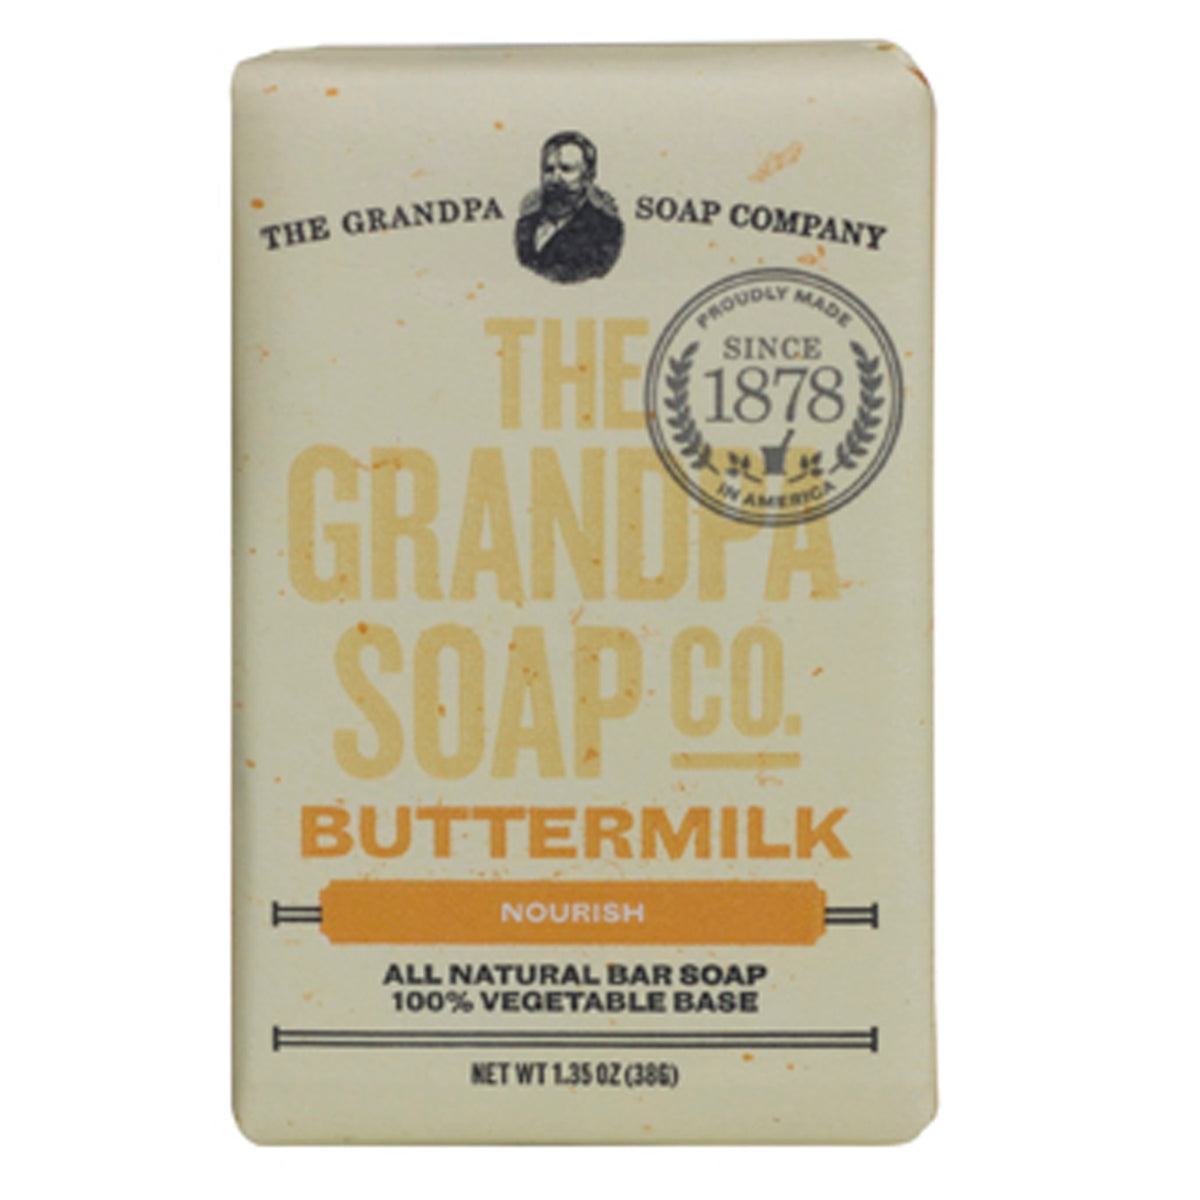 Grandpa Soap Co. Buttermilk Soap - Travel PAKT